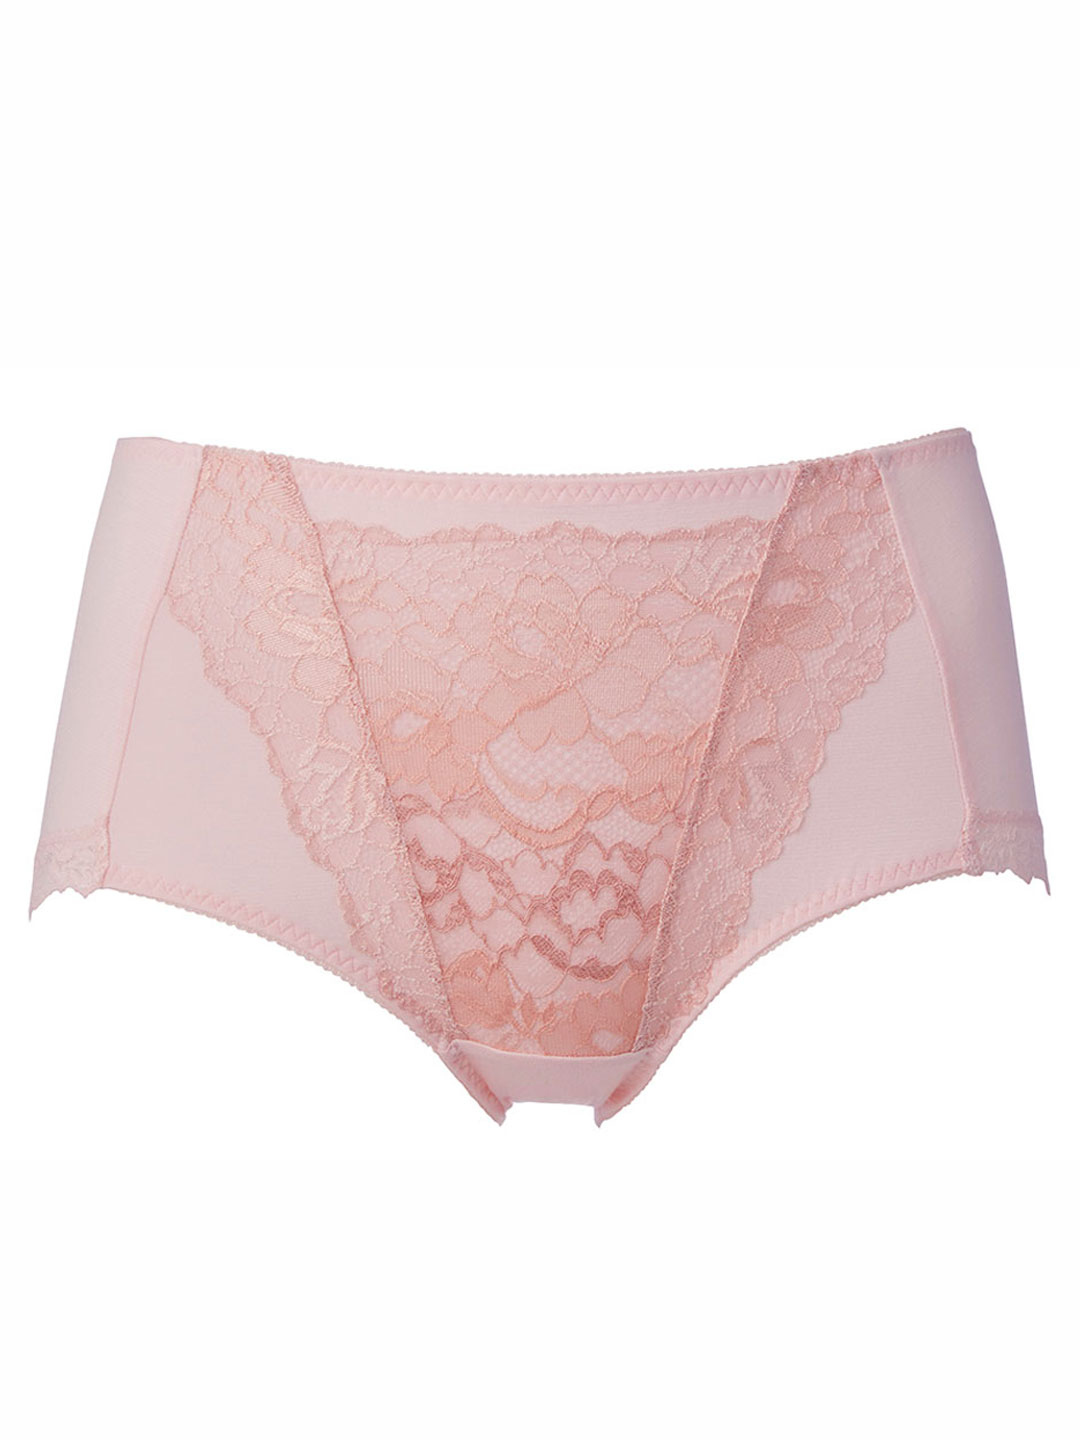 Lace Panty IS3233